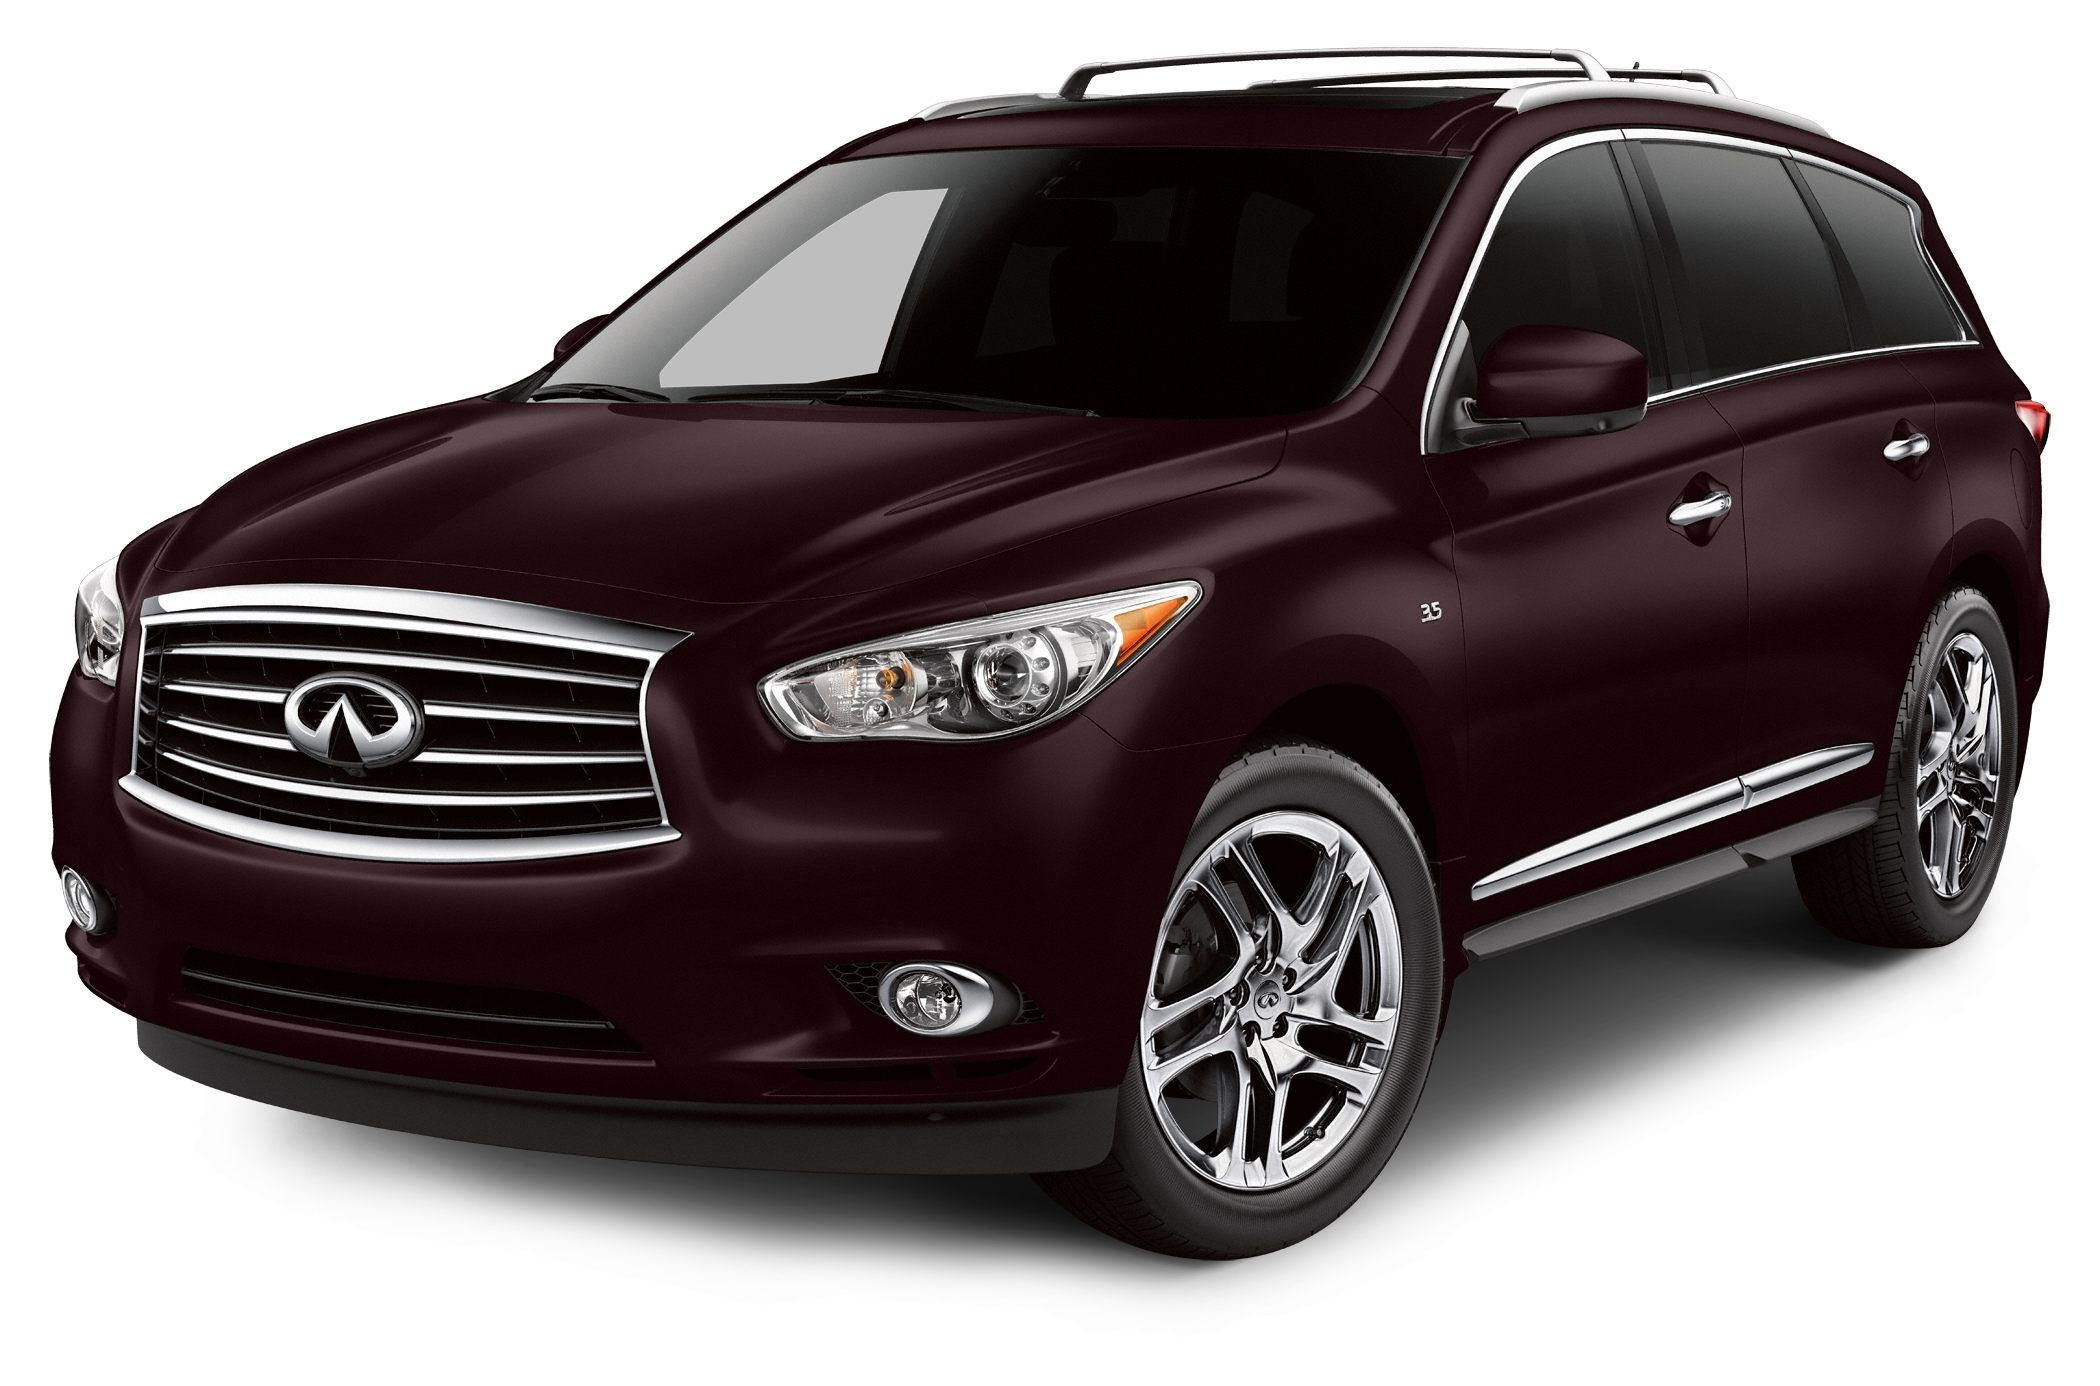 New 2014 Infiniti QX60 Price, Photos, Reviews, Safety